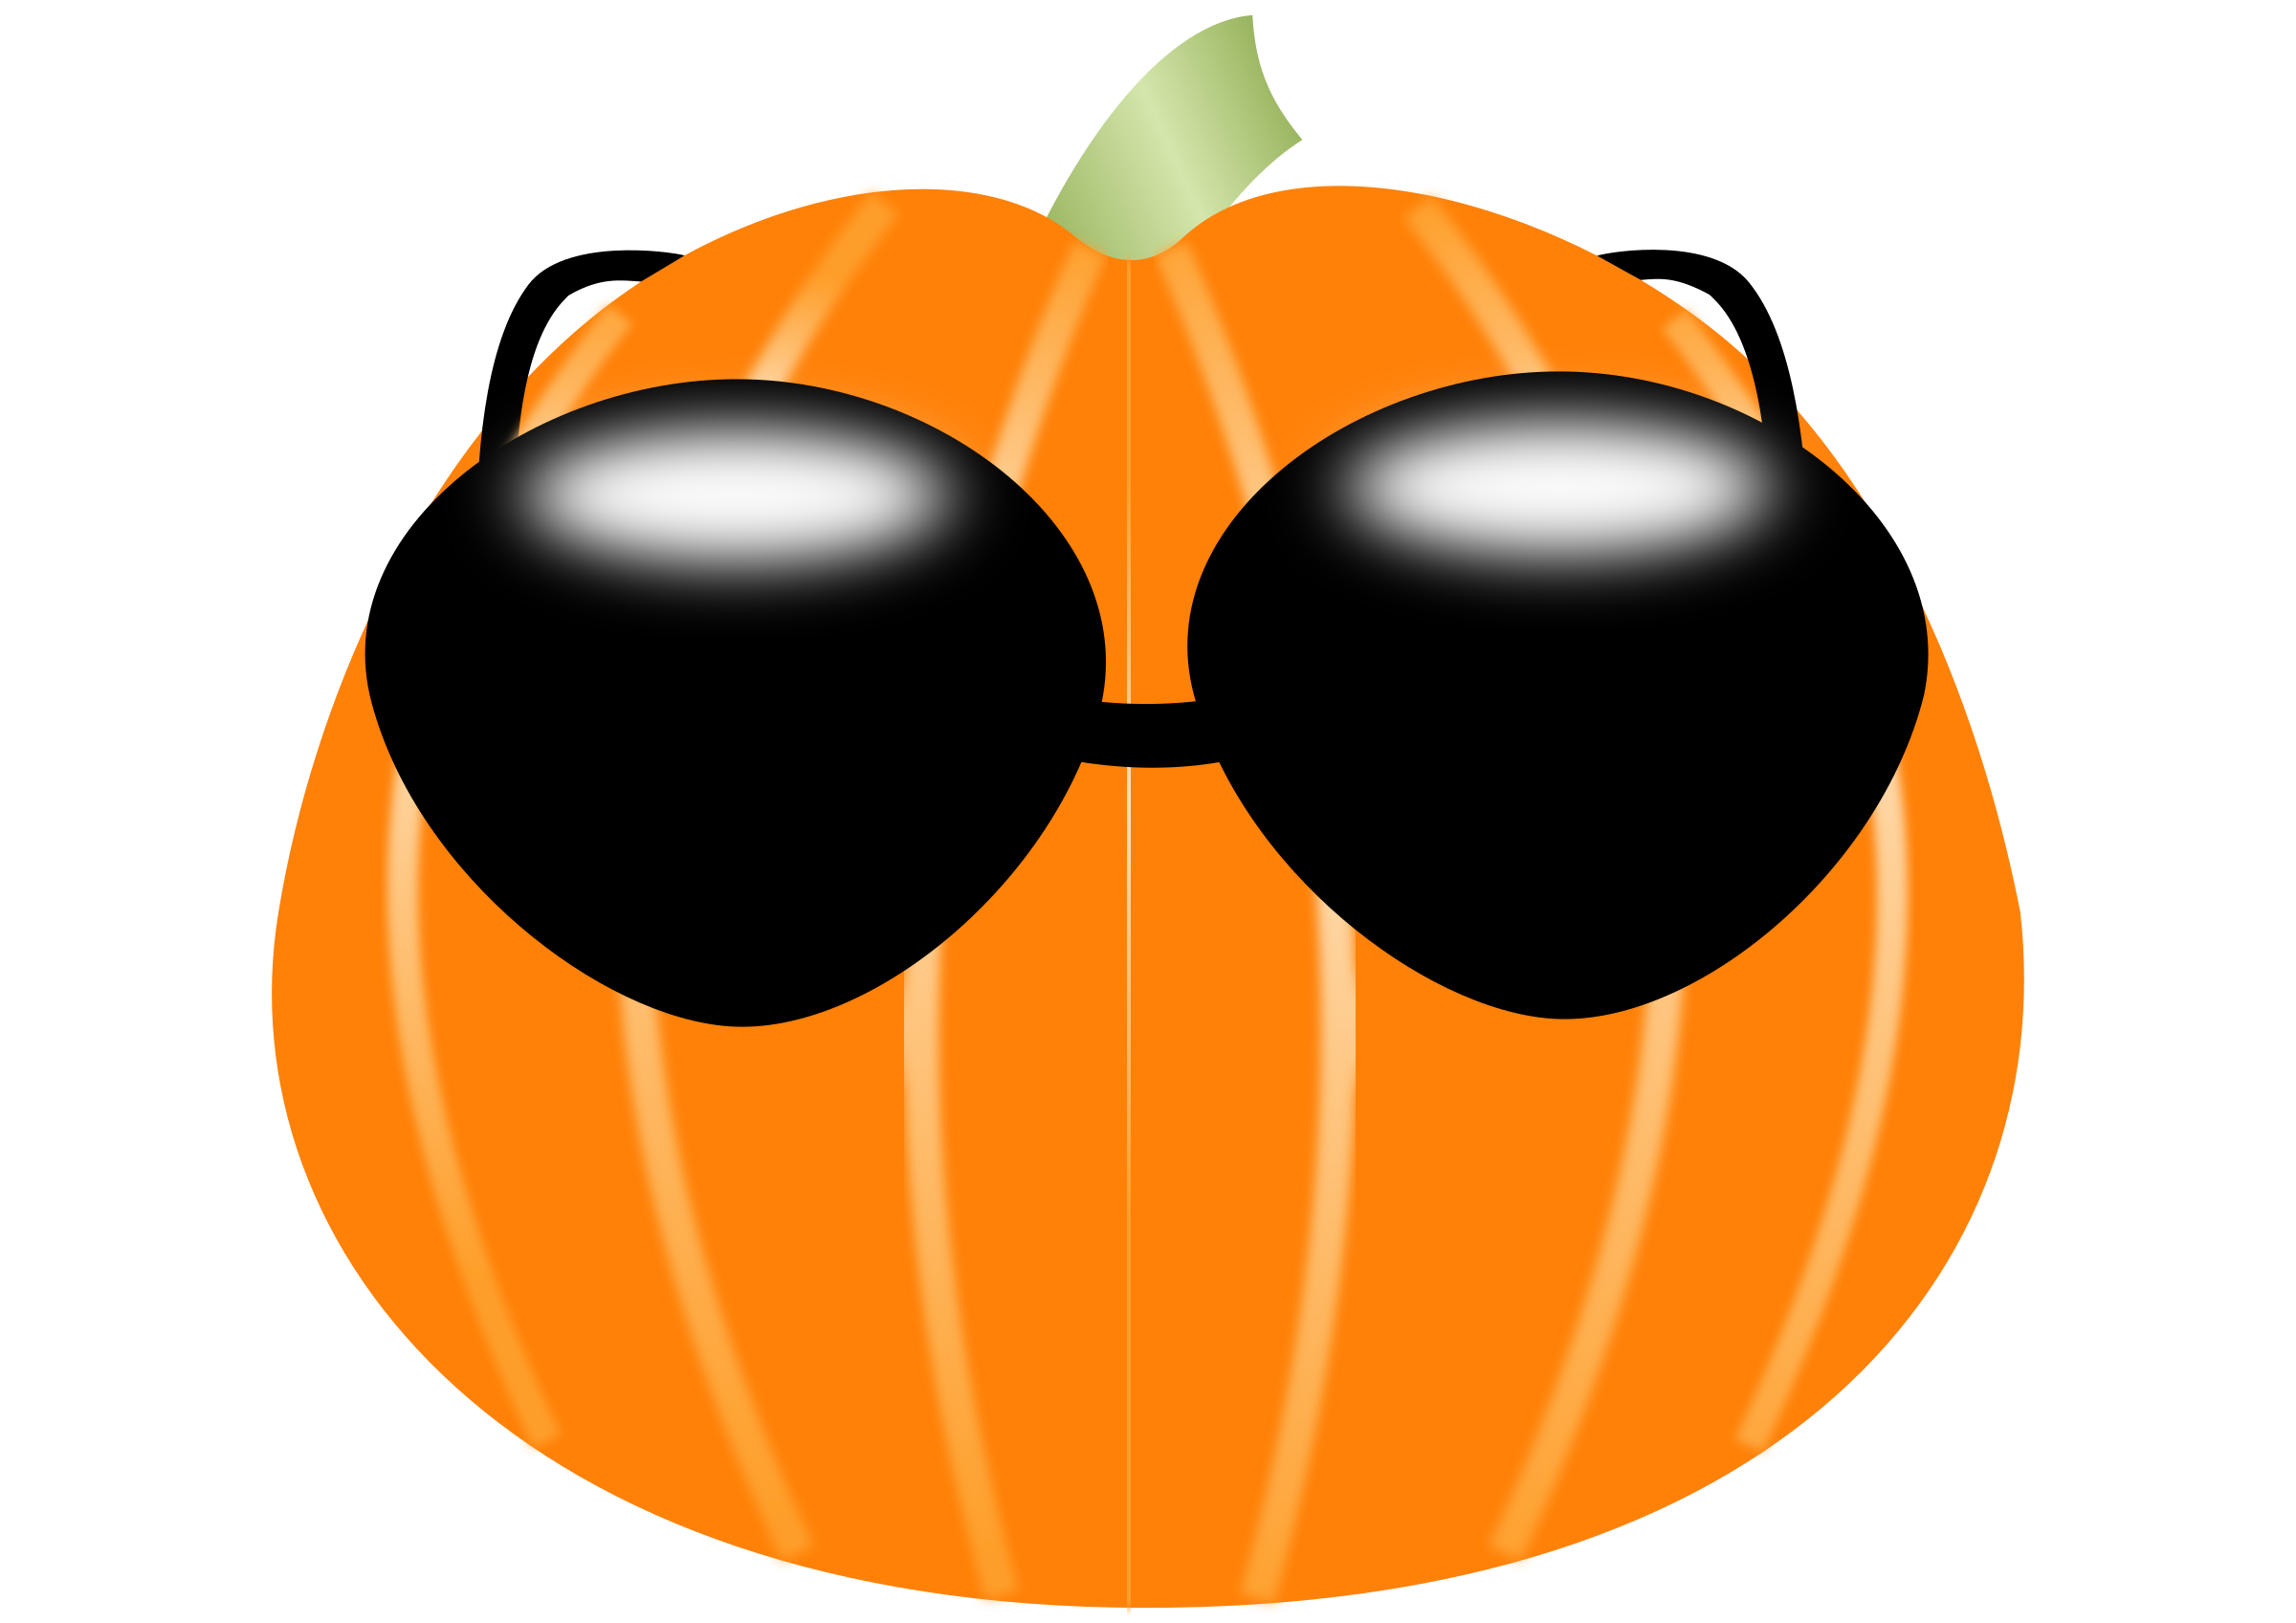 Sunglasses clipart cartoon. Pumpkin wearing